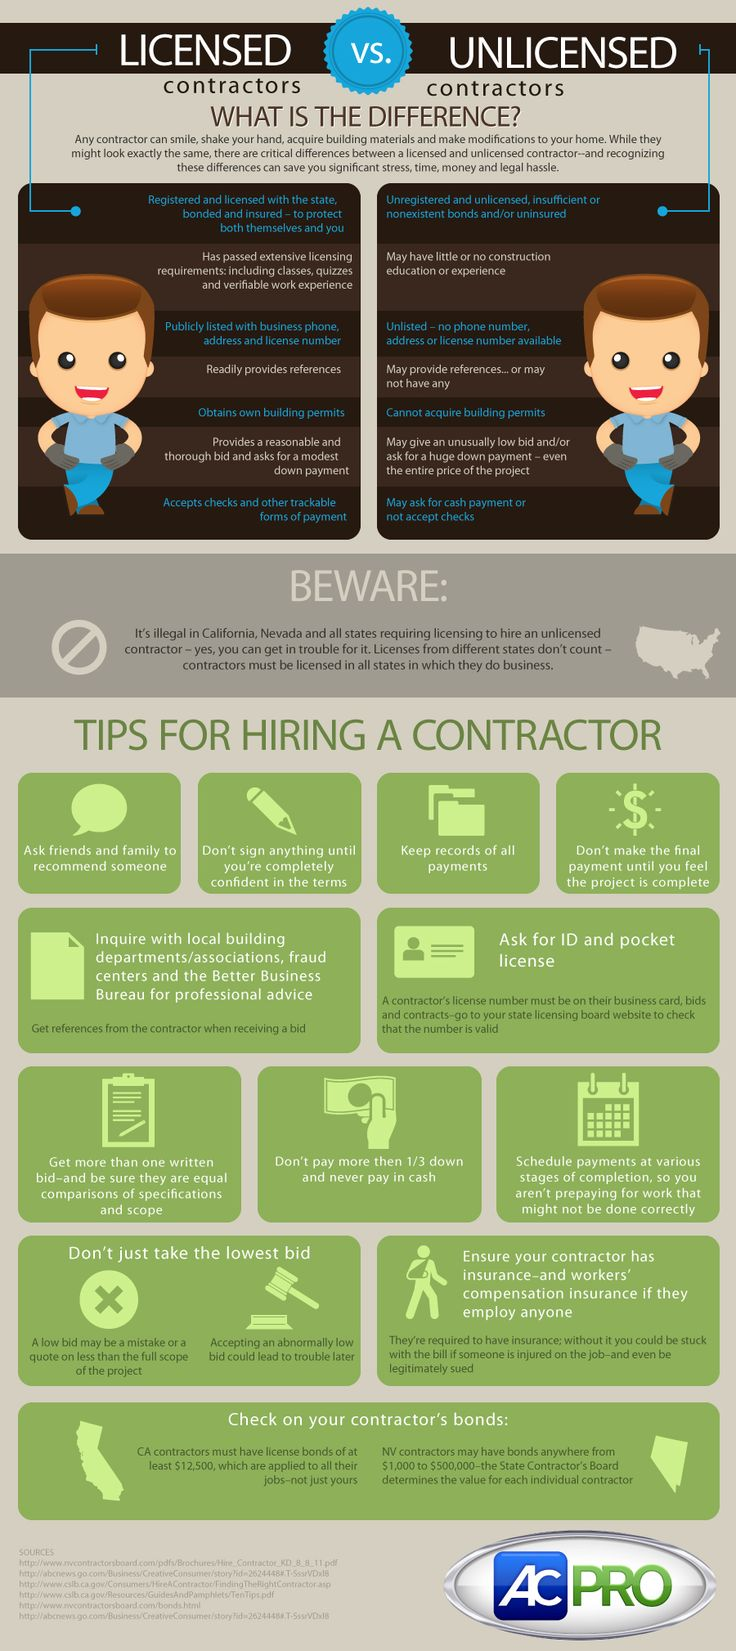 Florida state certified class a air conditioning contractor and epa - In This Infographic We Look At What Sets Apart Licensed Contractors From Unlicensed Contractors And We